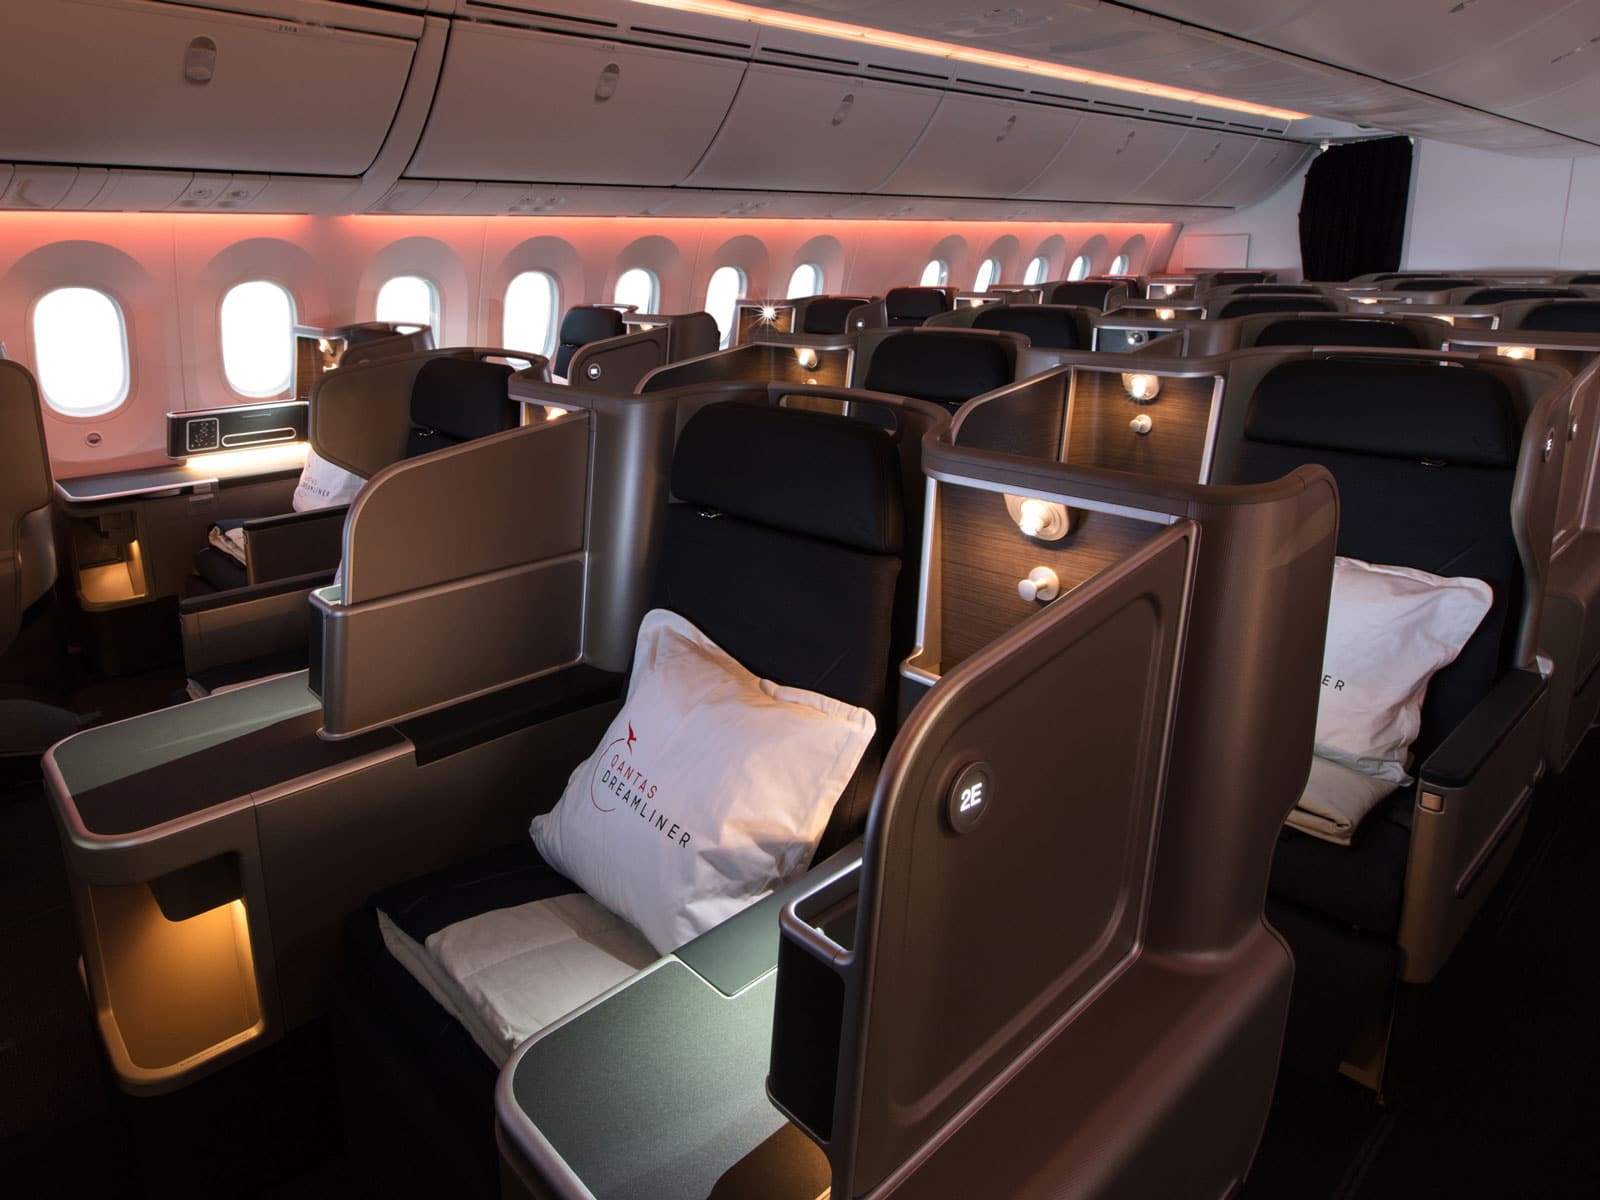 qantas 787 dreamliner business class seats side